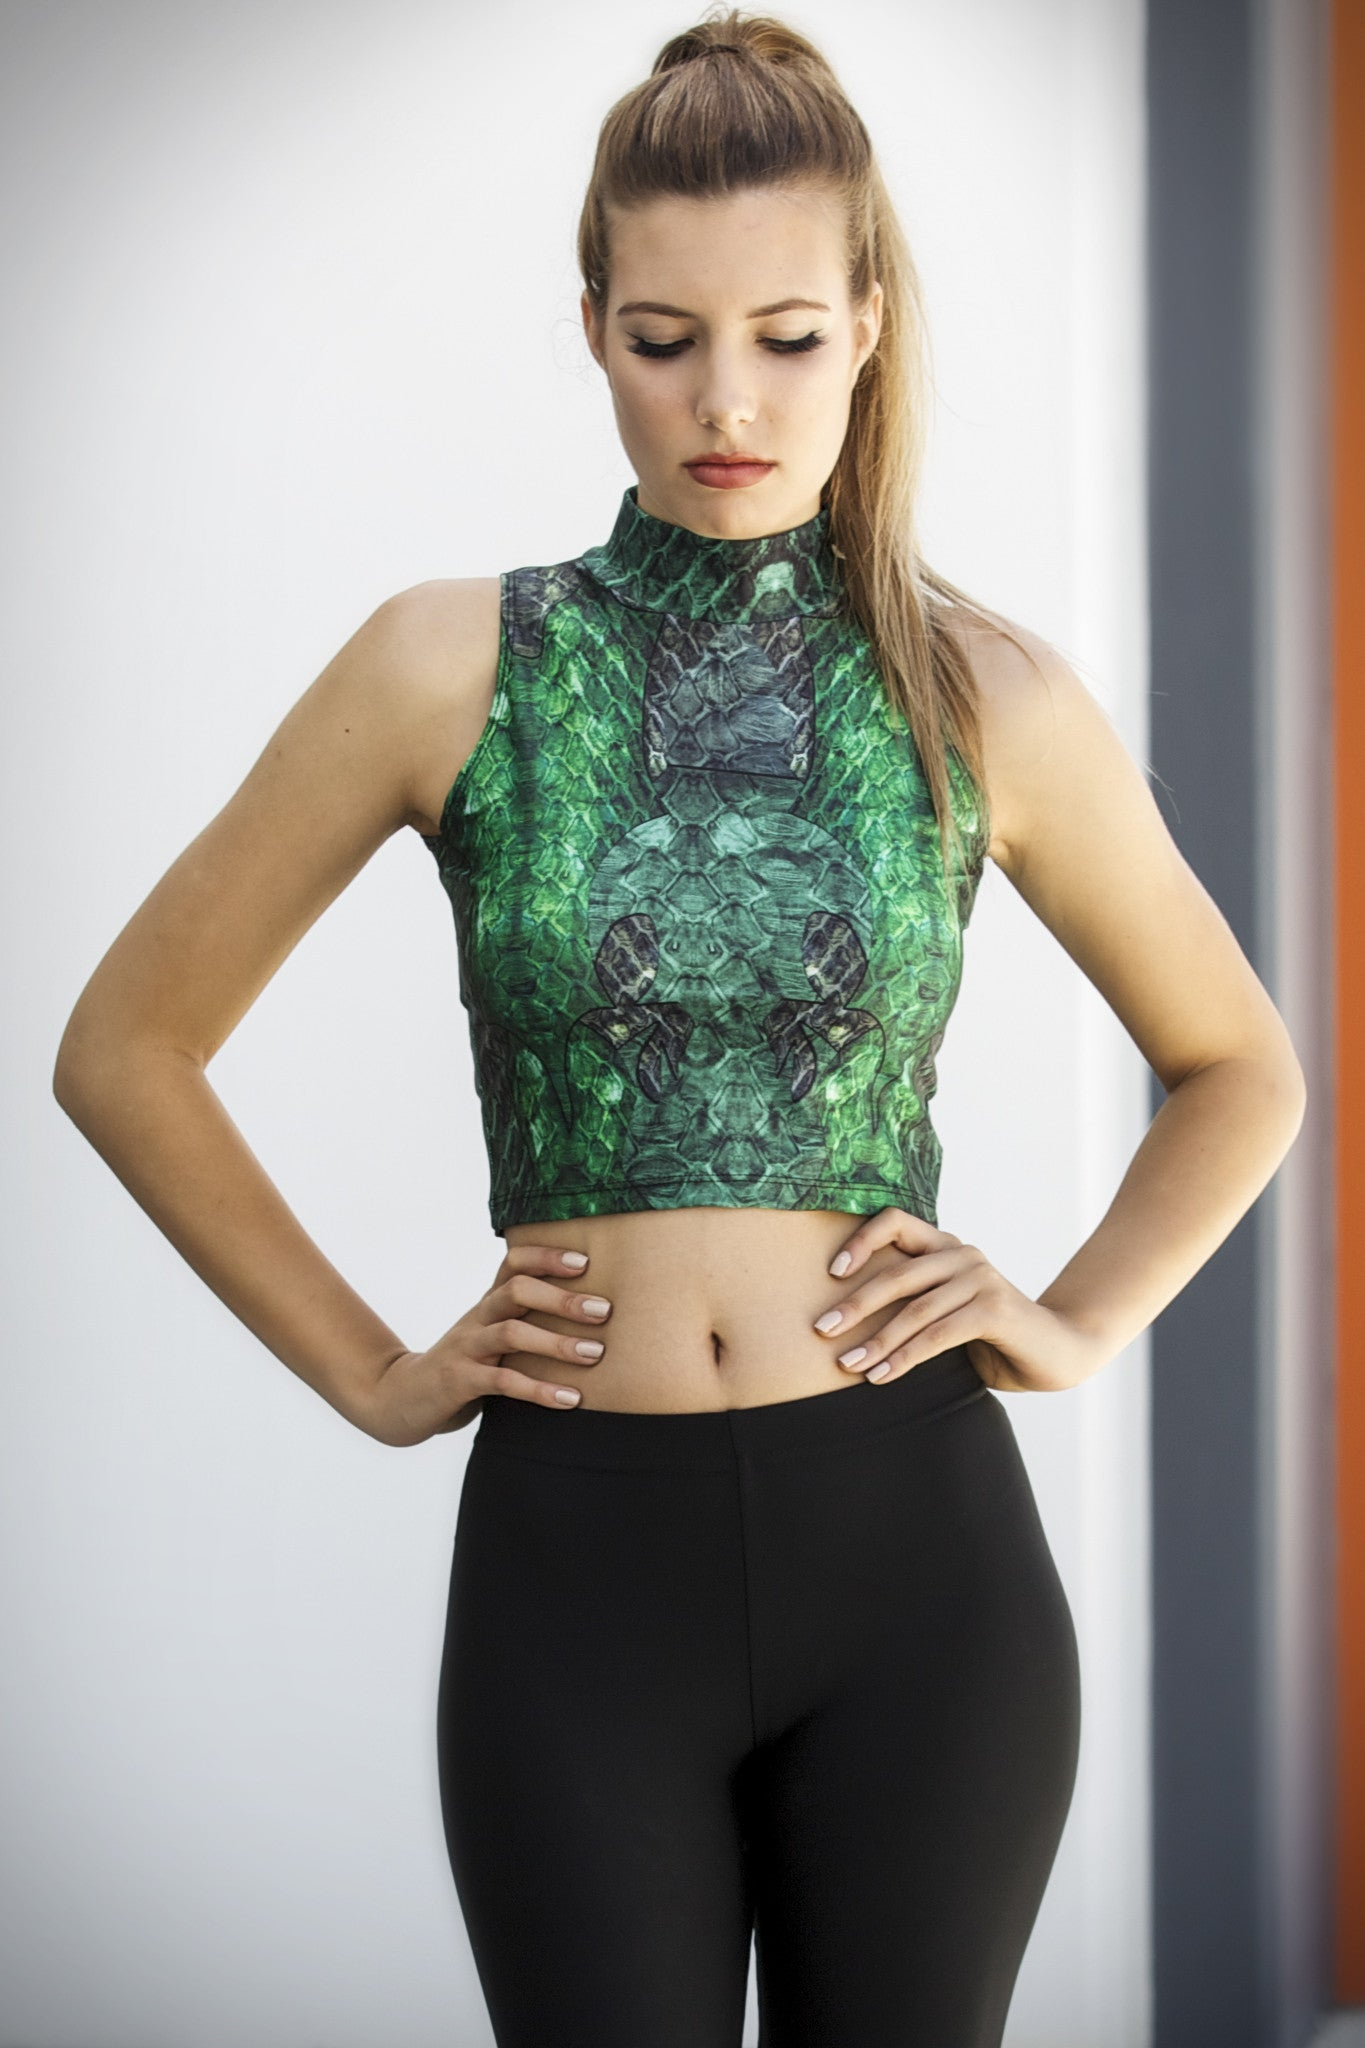 Green Dragon Queen High Neck Crop